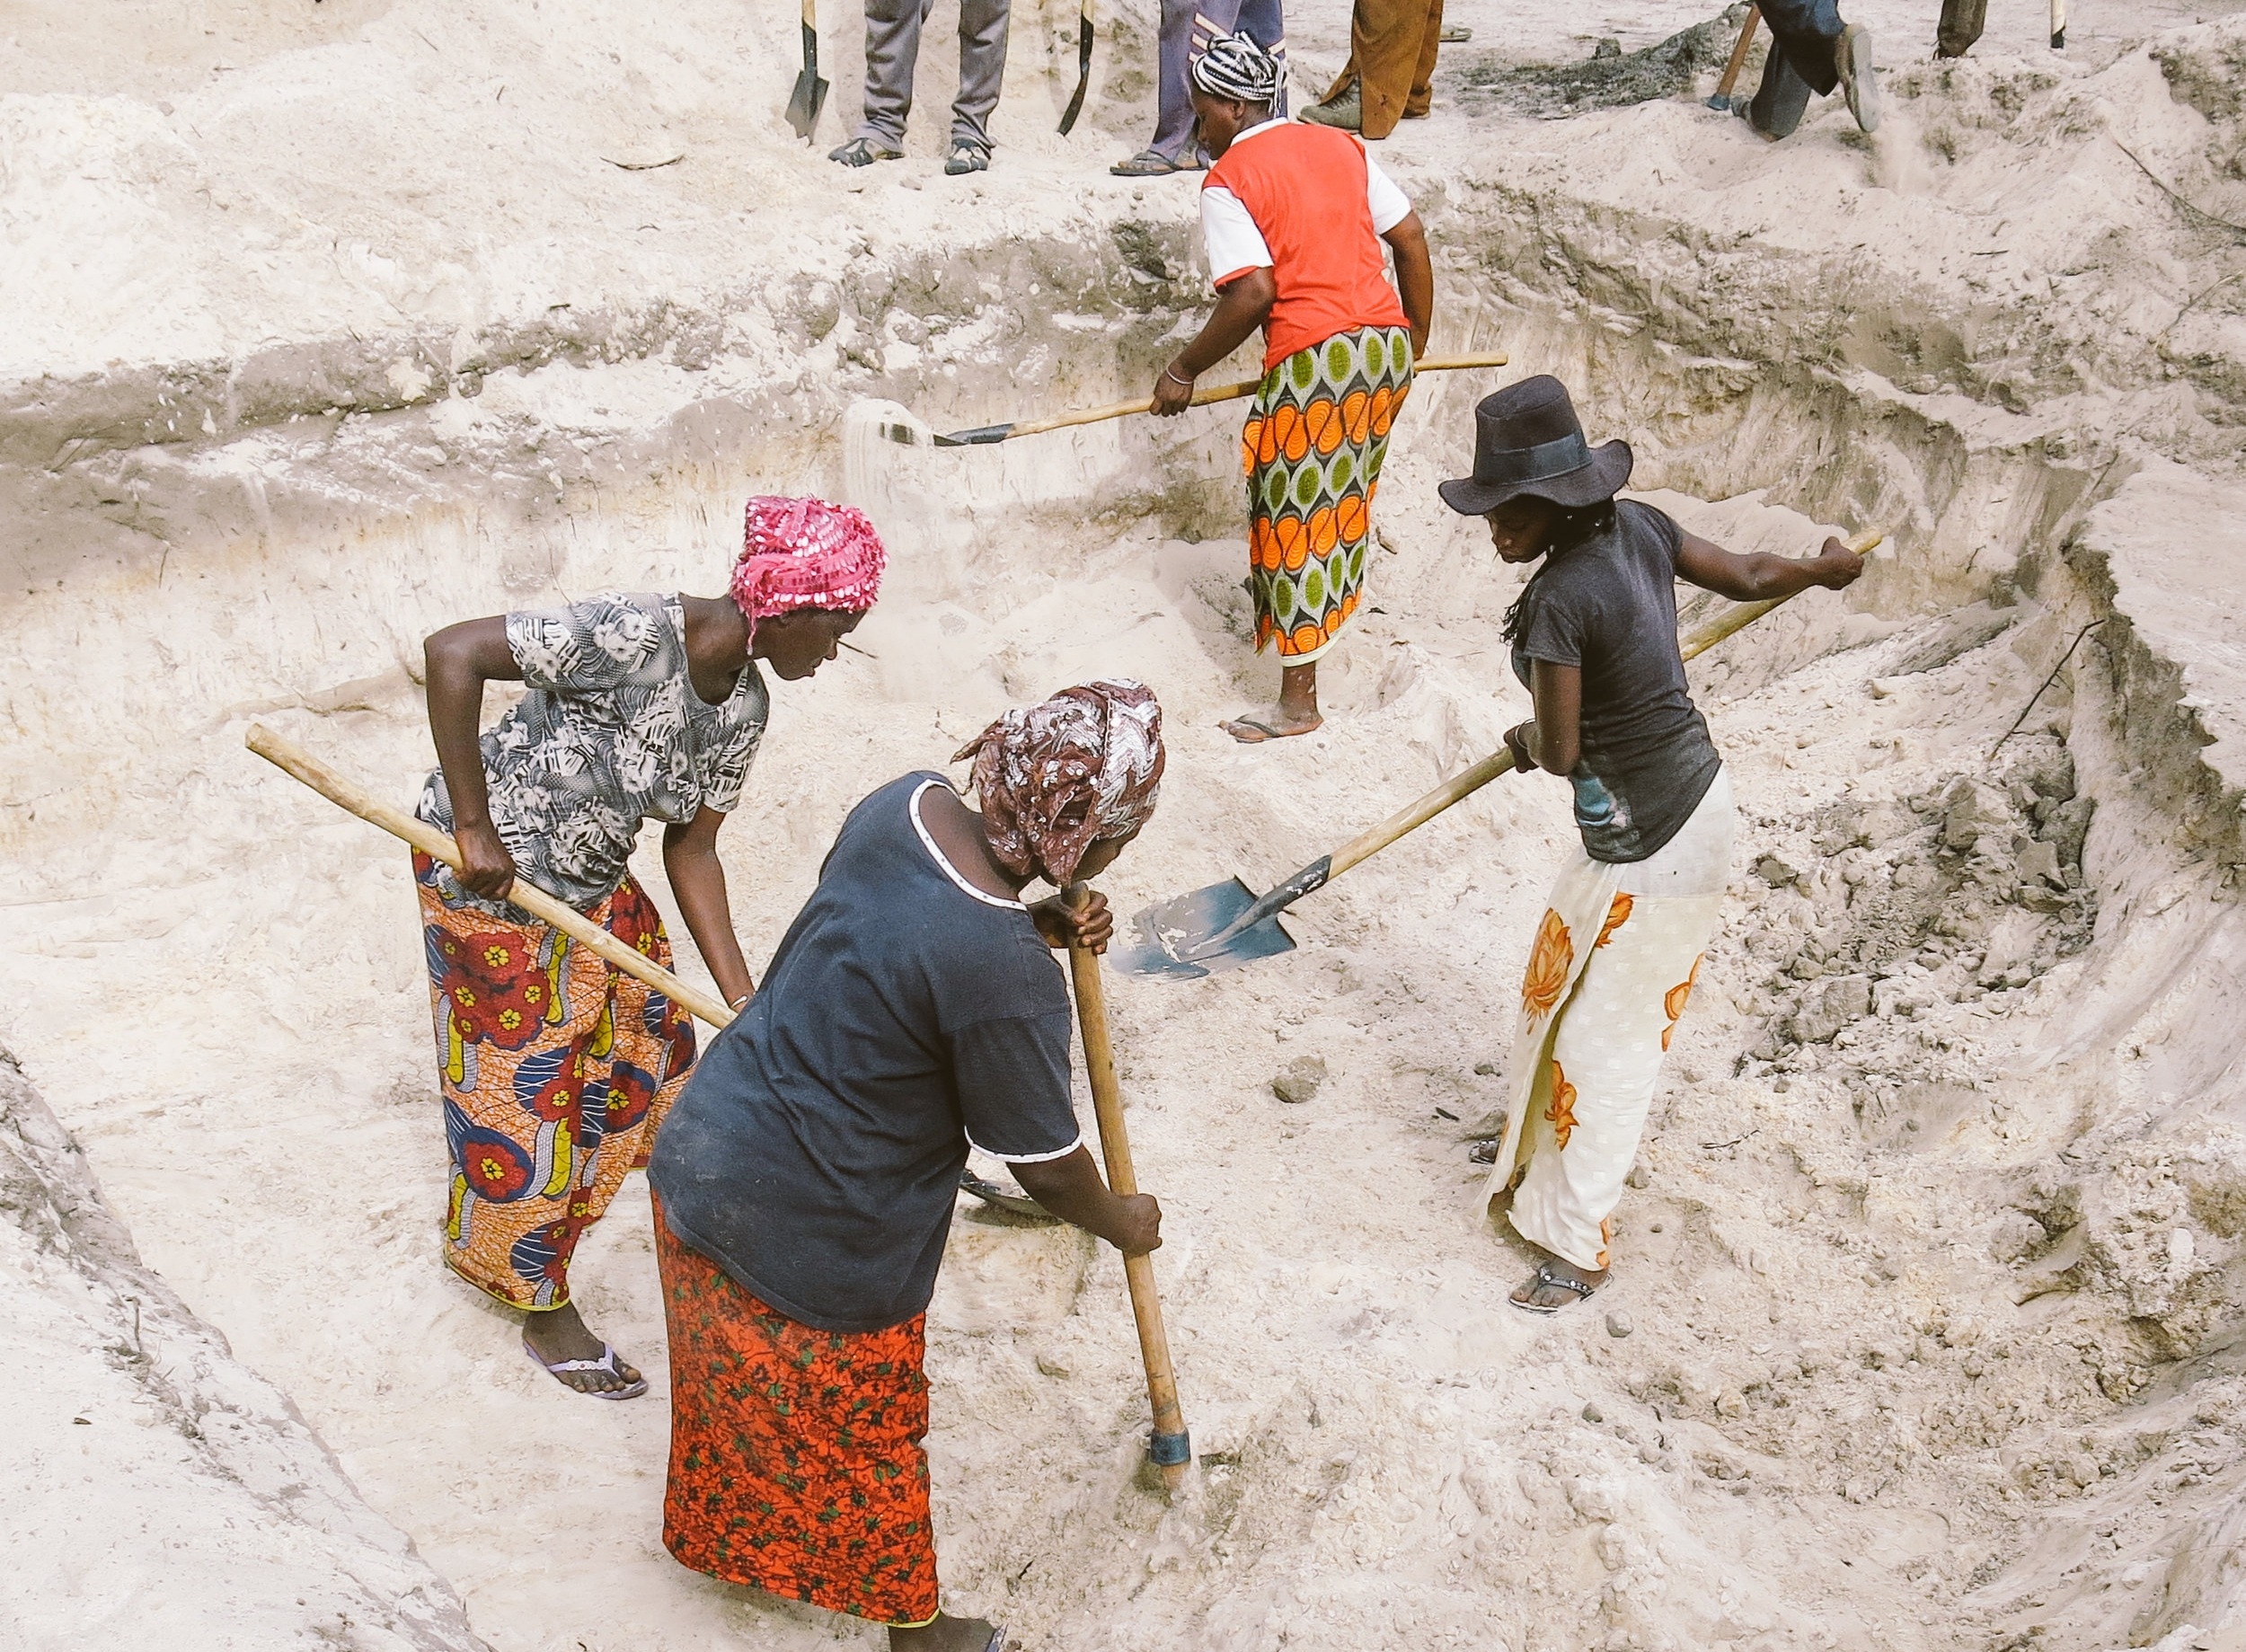 Workers mining laterite soil for the new roads